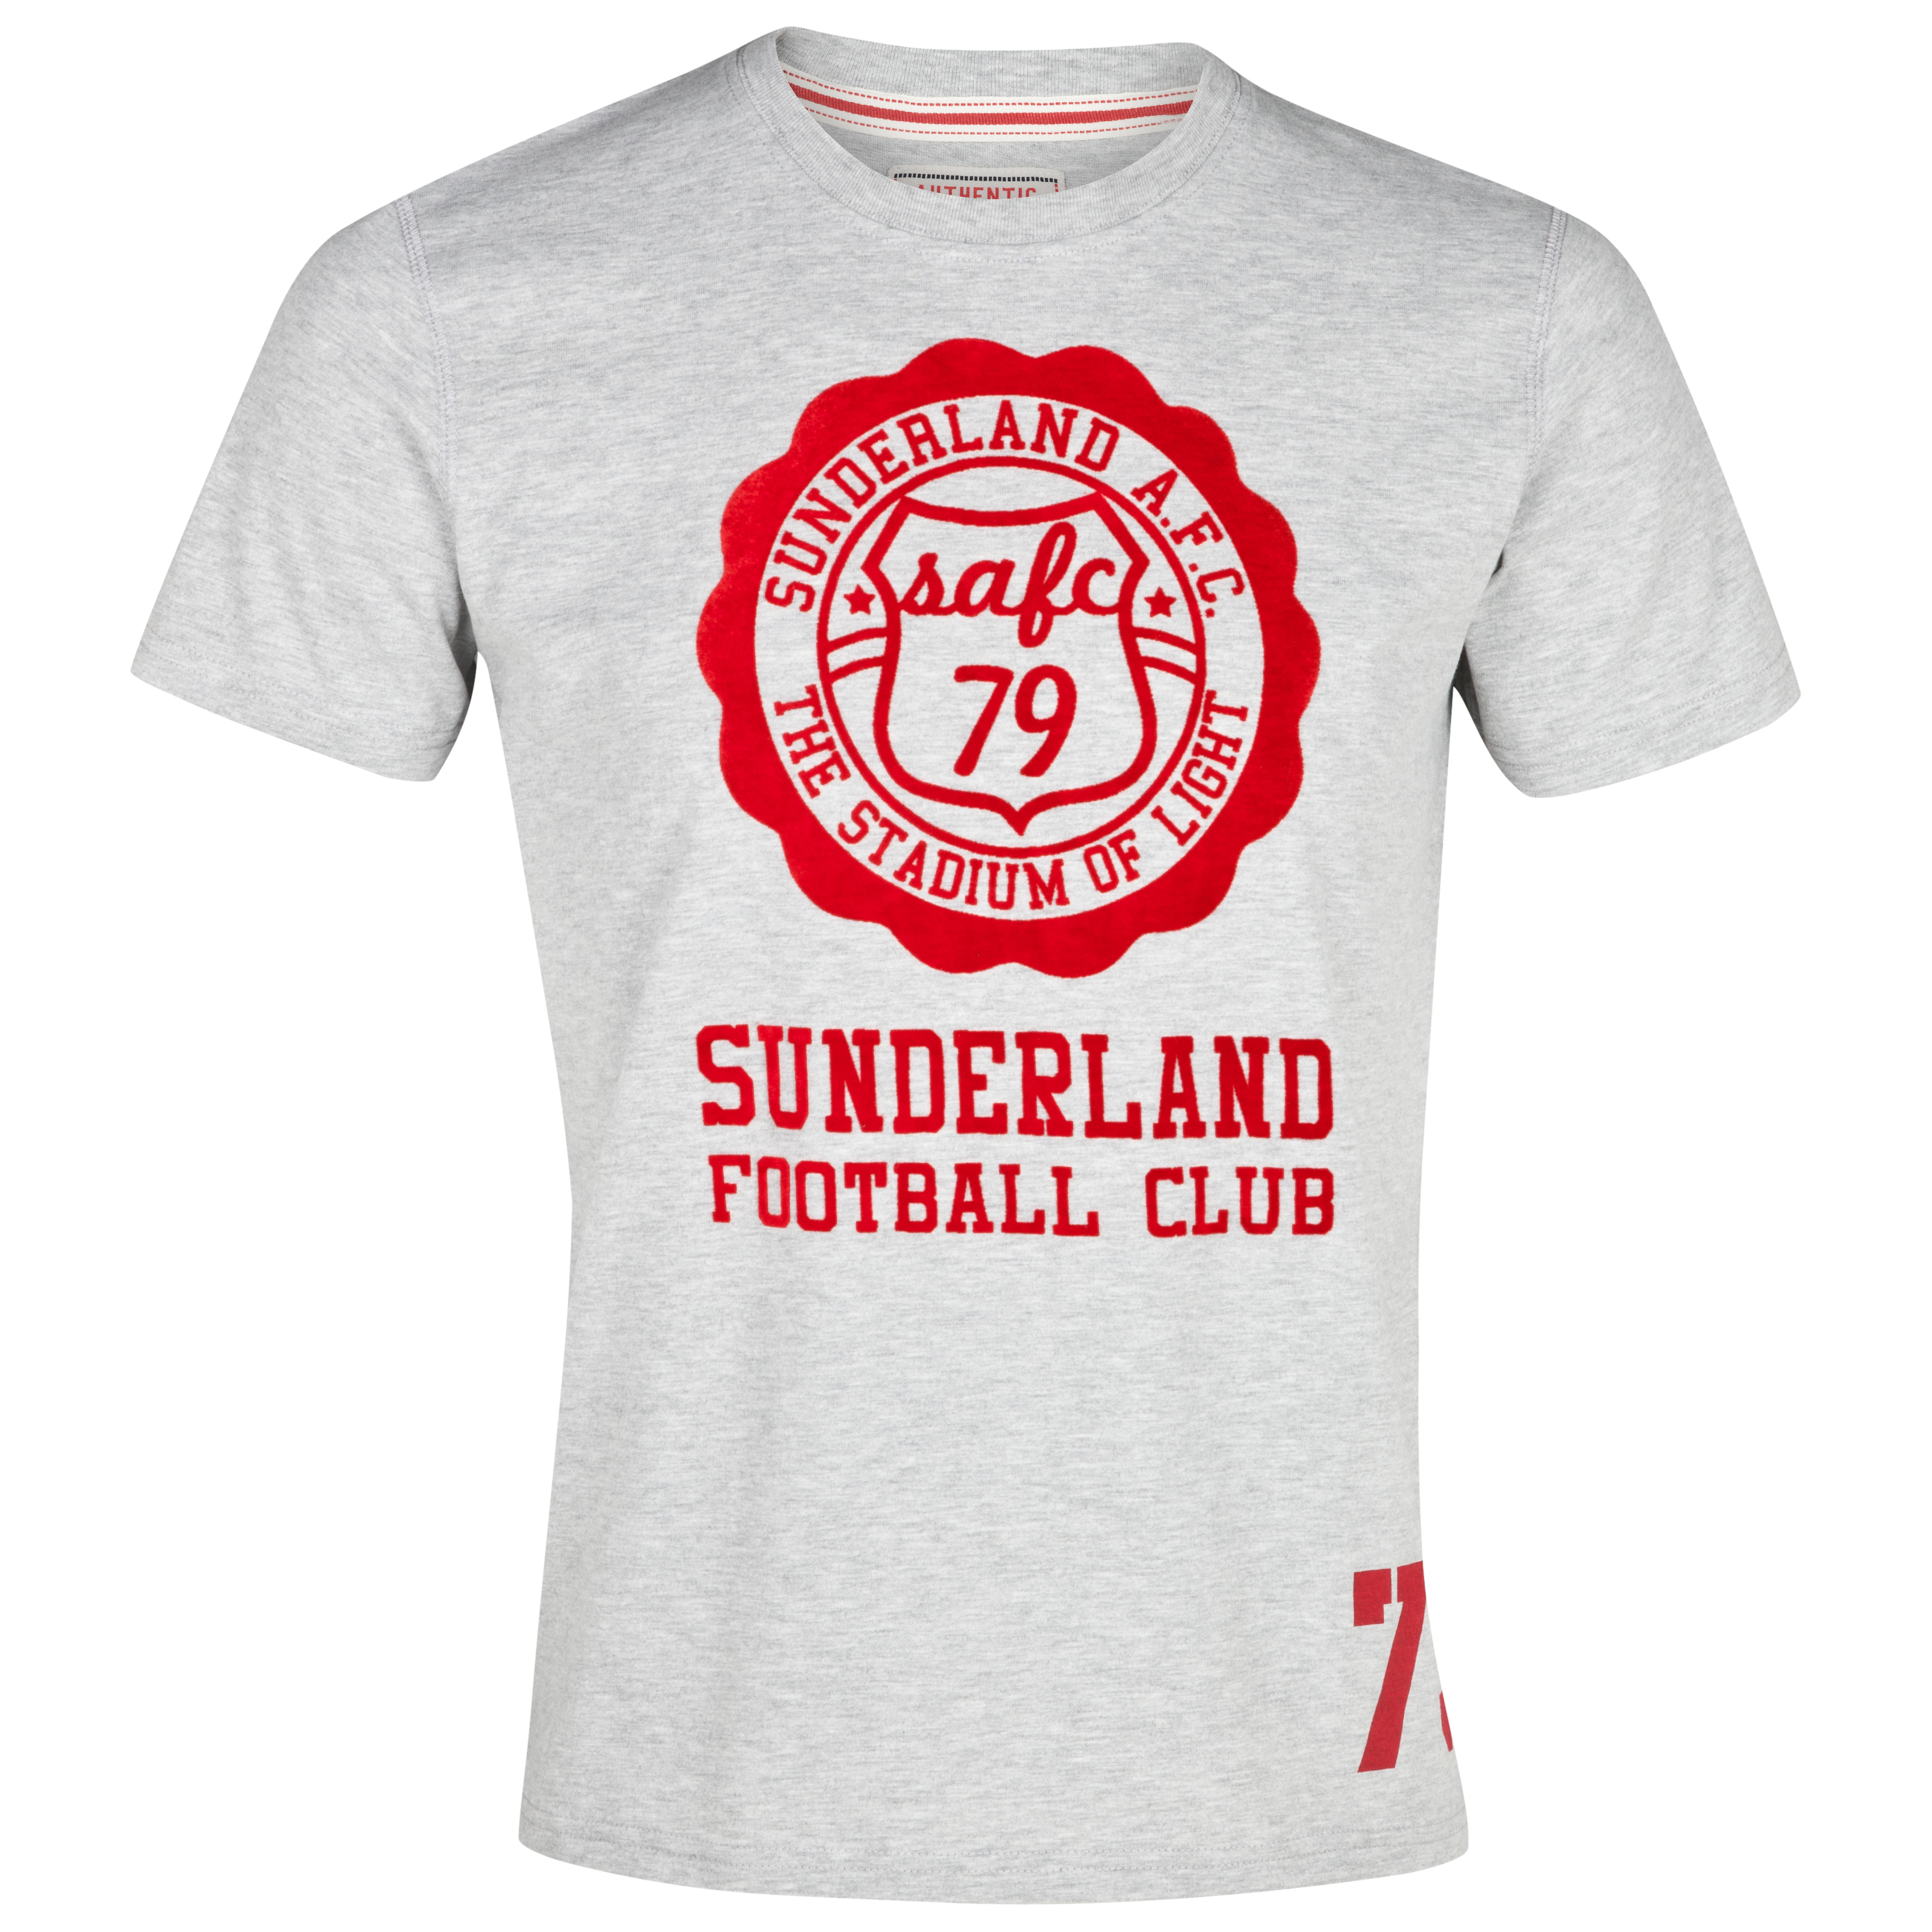 Sunderland Halo T-Shirt - Grey